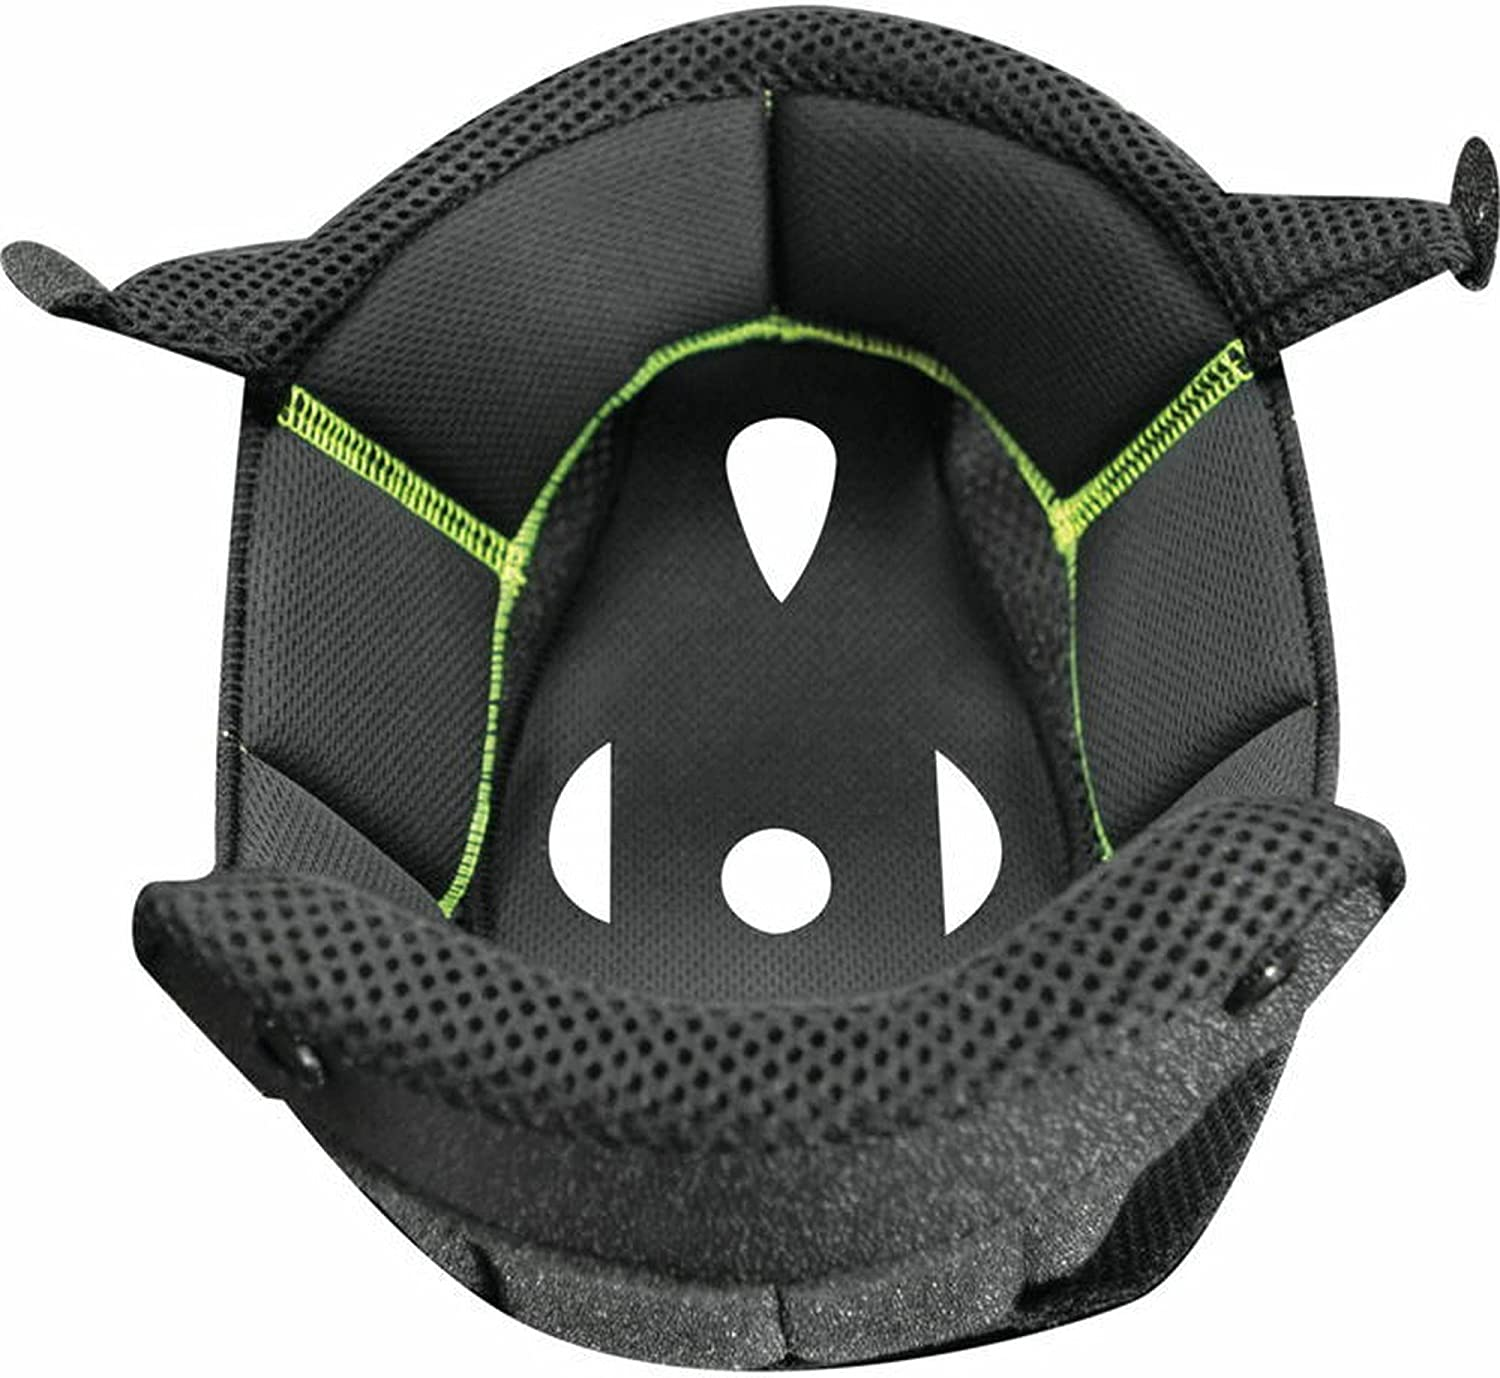 THH Finally resale start T-710X Helmet Inner Top Black Inventory cleanup selling sale Liner Pad MD